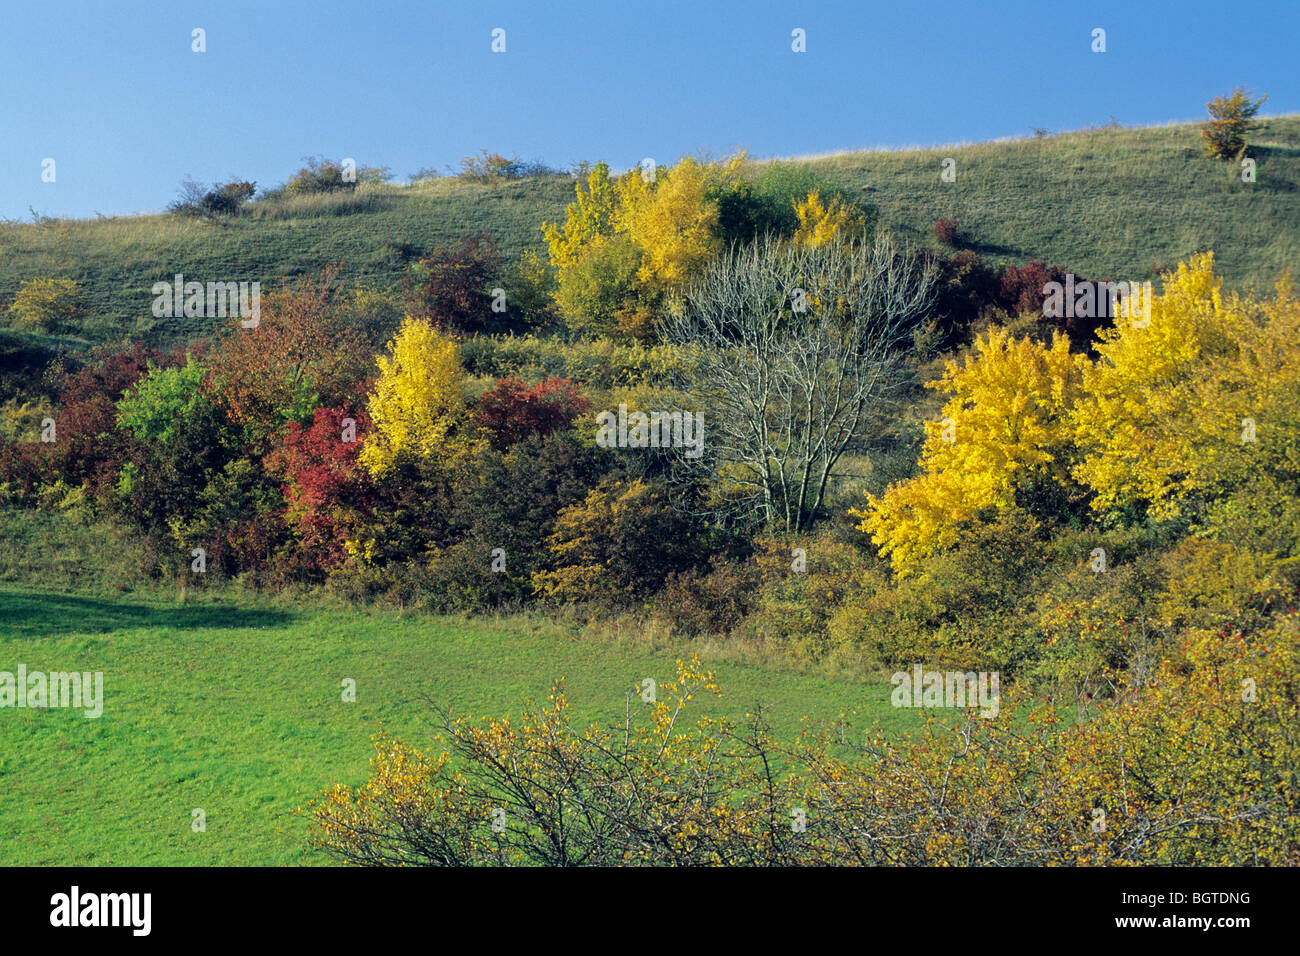 Extensive Hedge in Autumn Colour Stock Photo